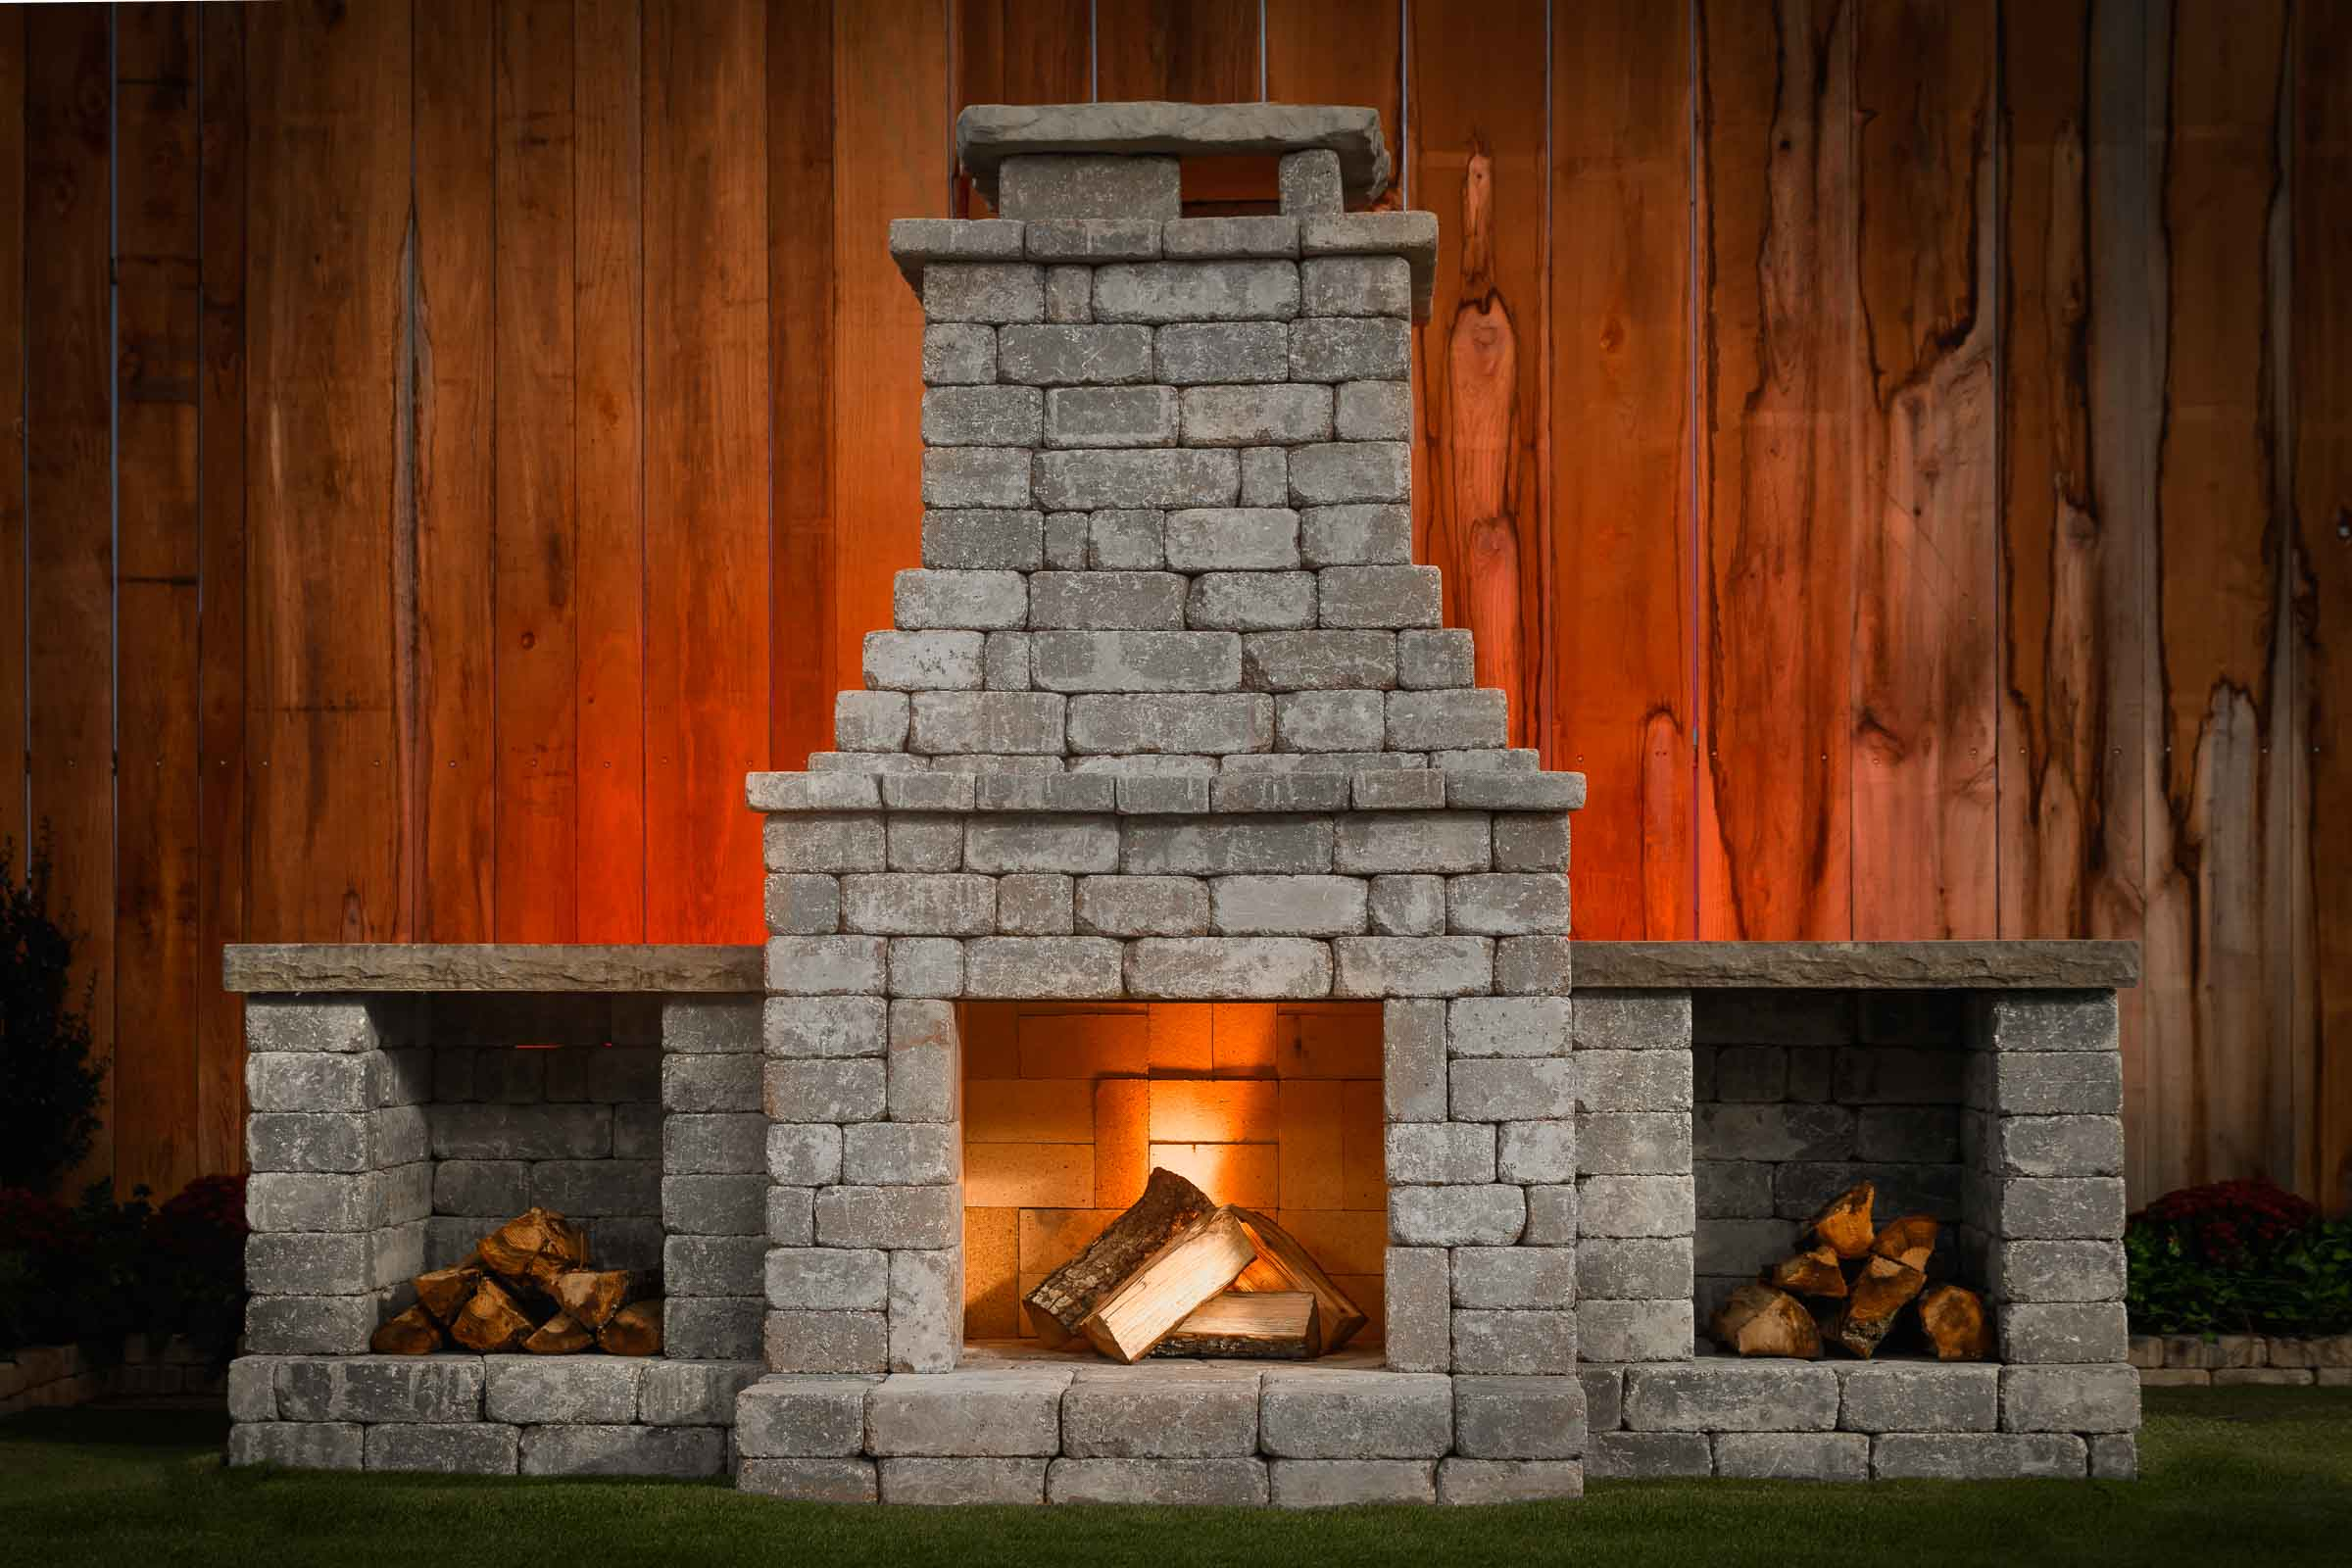 Diy Outdoor Fireplace Kit Fremont Makes Hardscaping Cheap